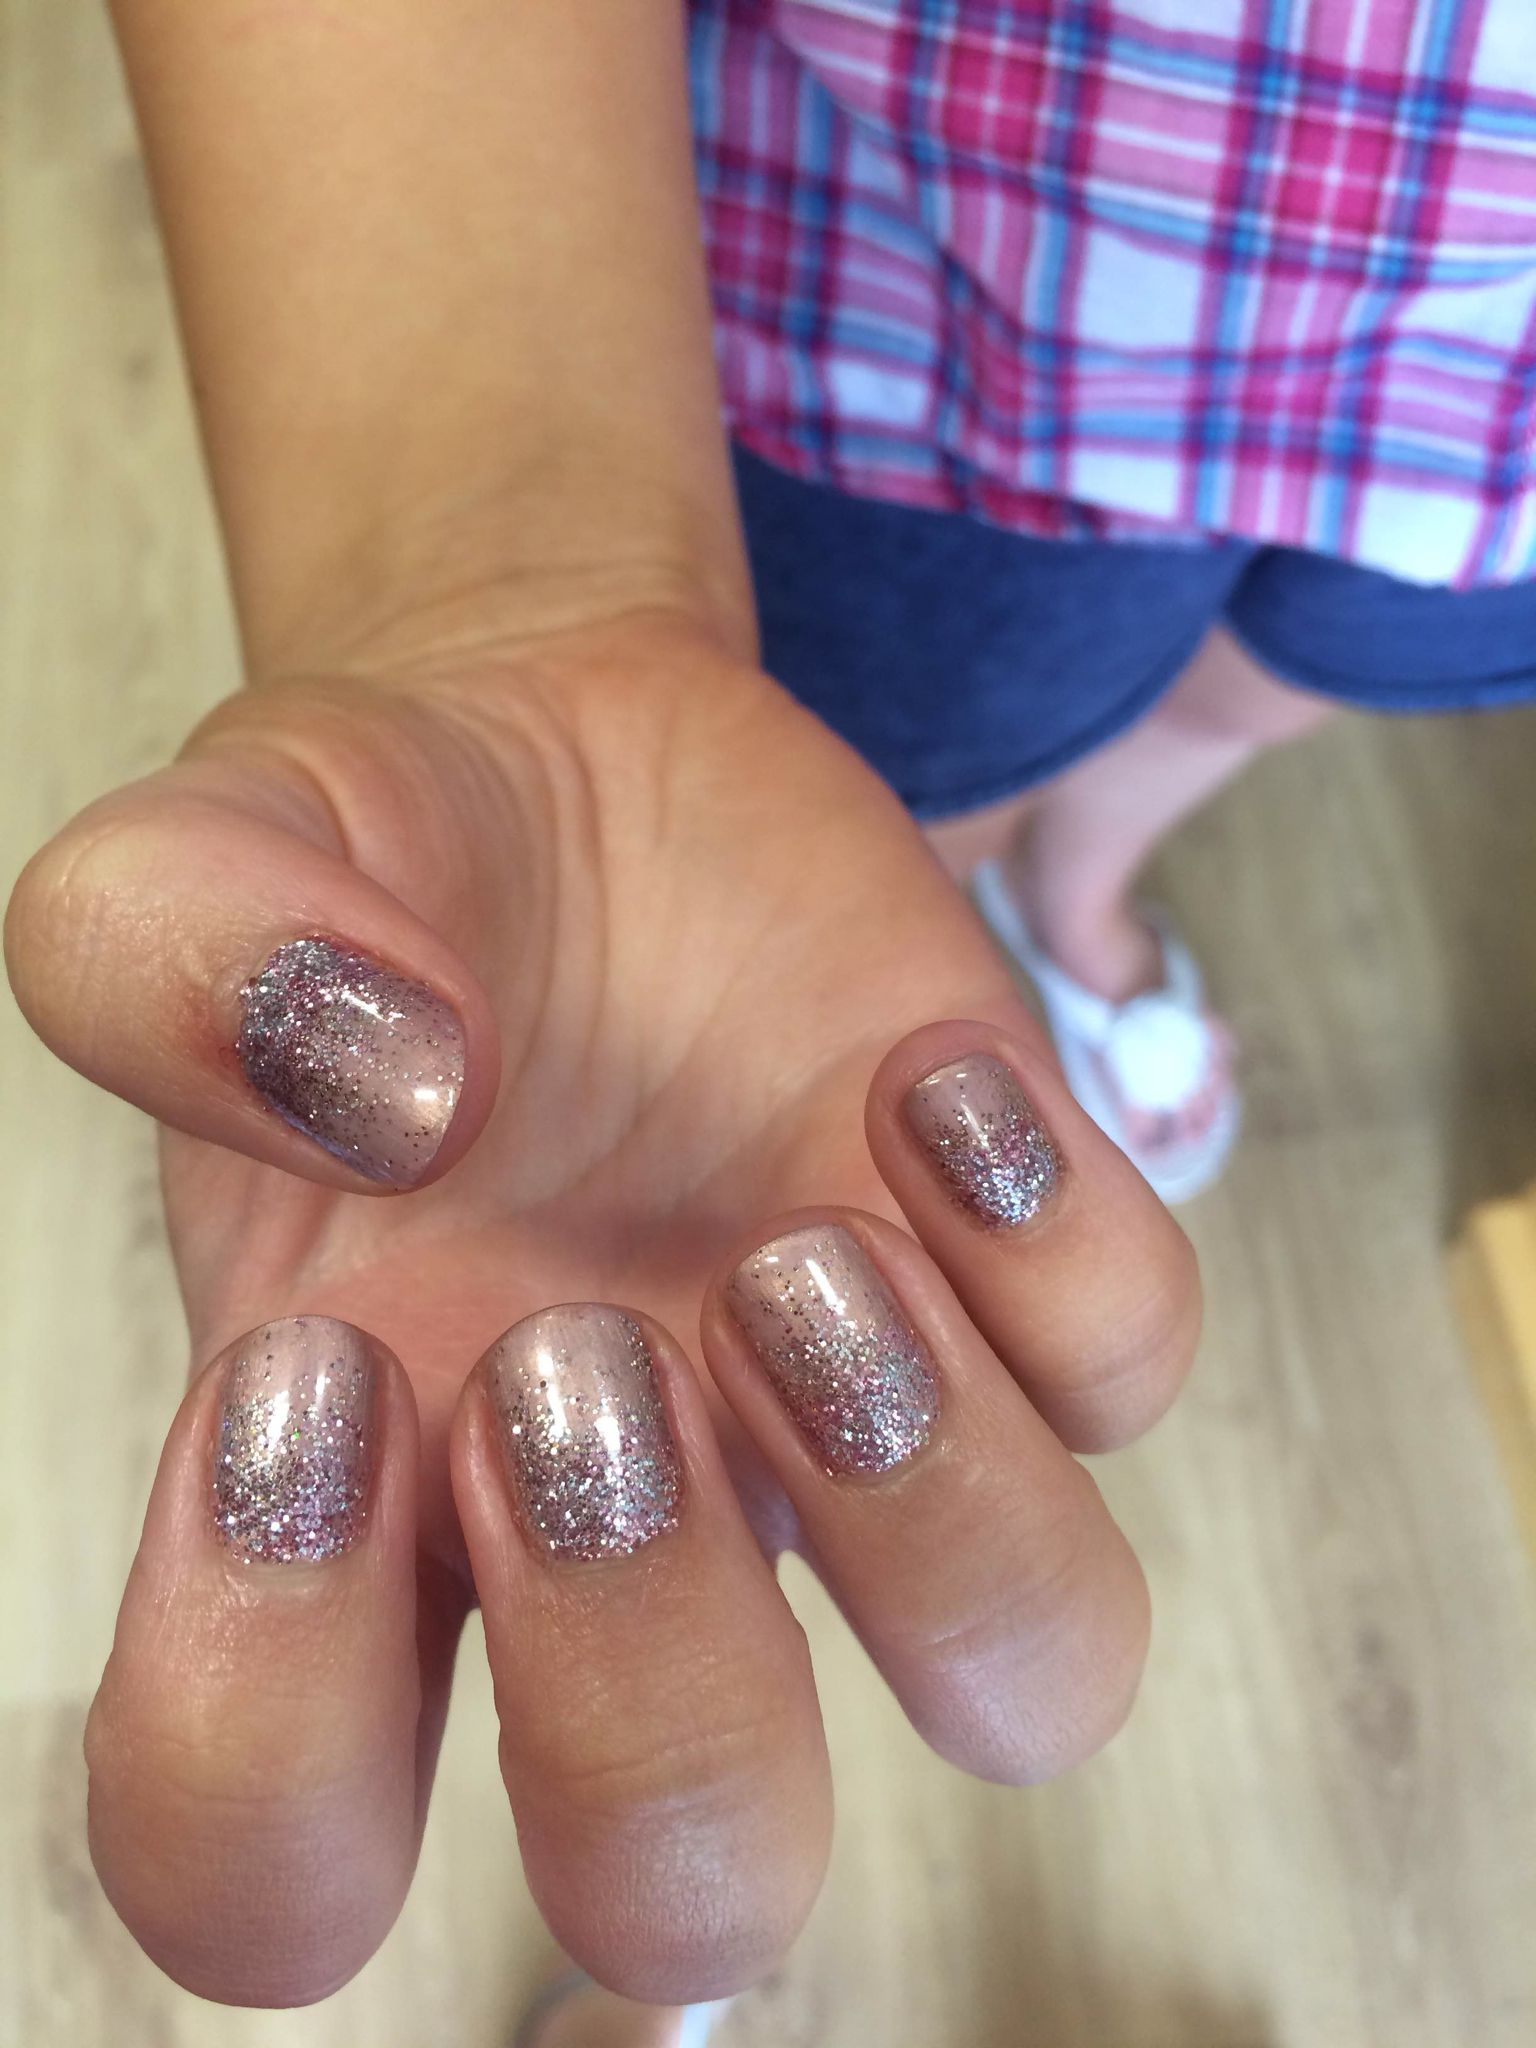 CND Shellac iced cappuccino with bronze glitter ombré ☕ ✨ | Nails ...